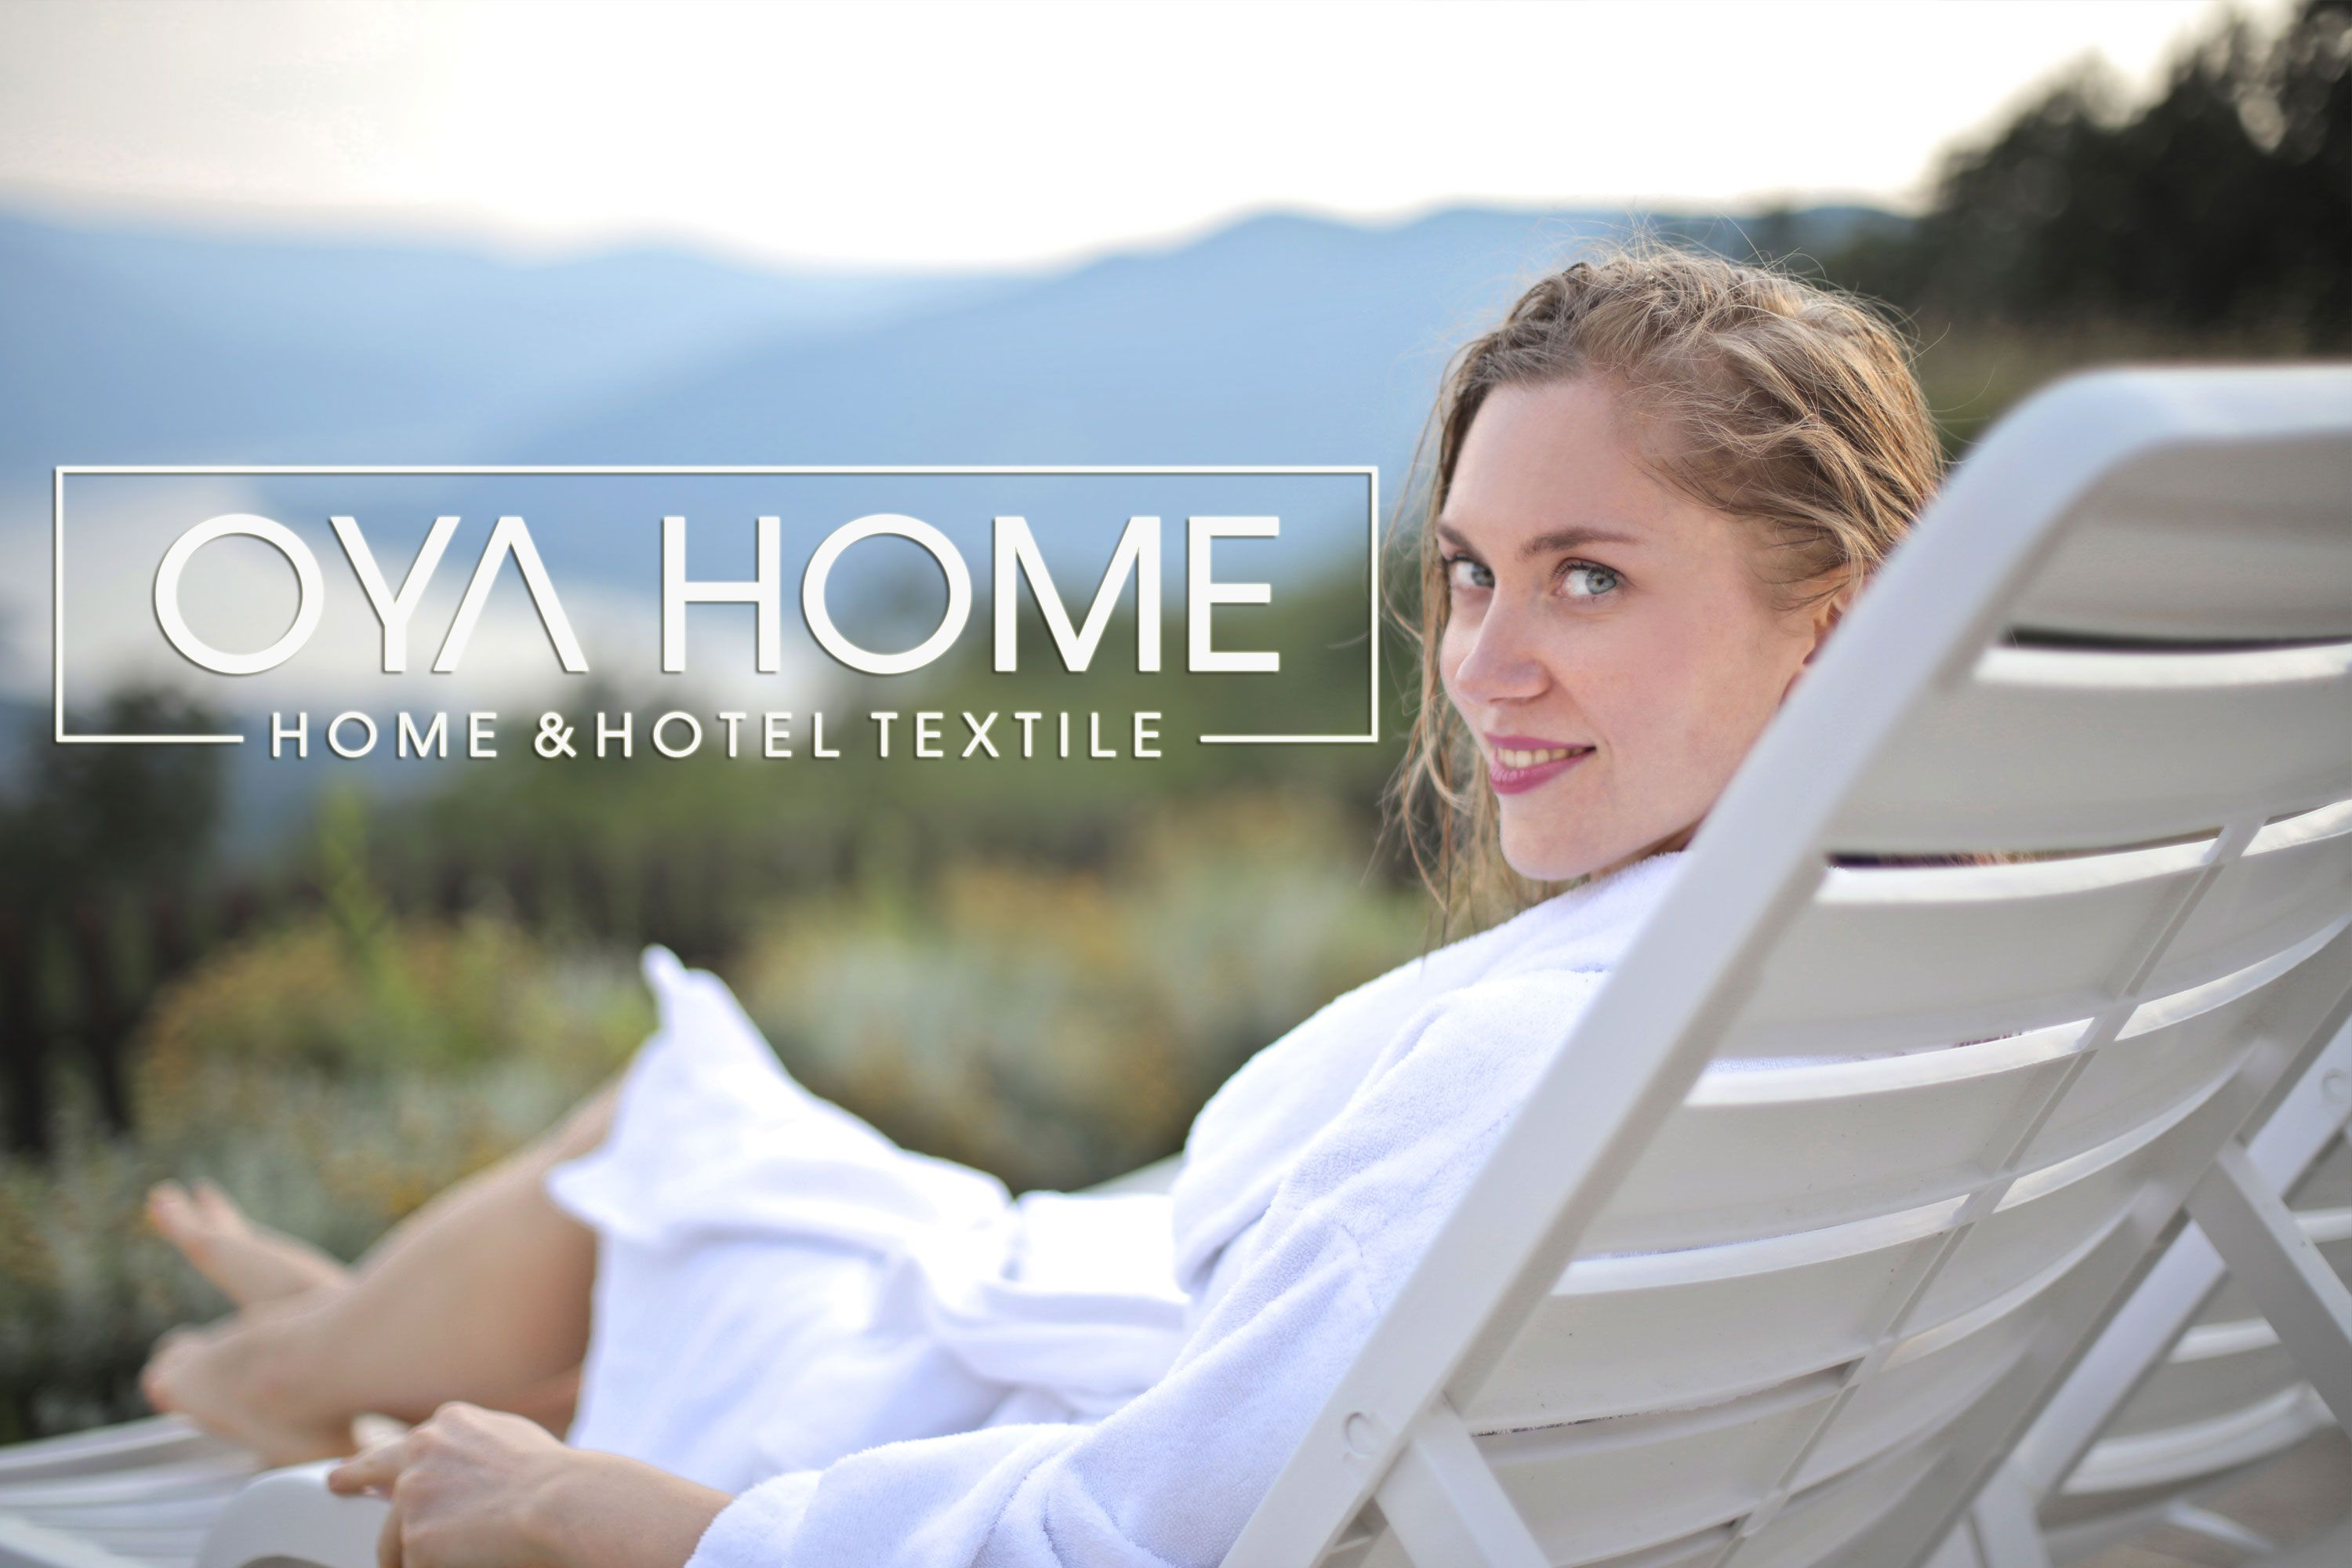 Oya Textile  Hotels  Homes Textile  We quote the best price according to your requirements and specifications We match your target price which depends on your market with...